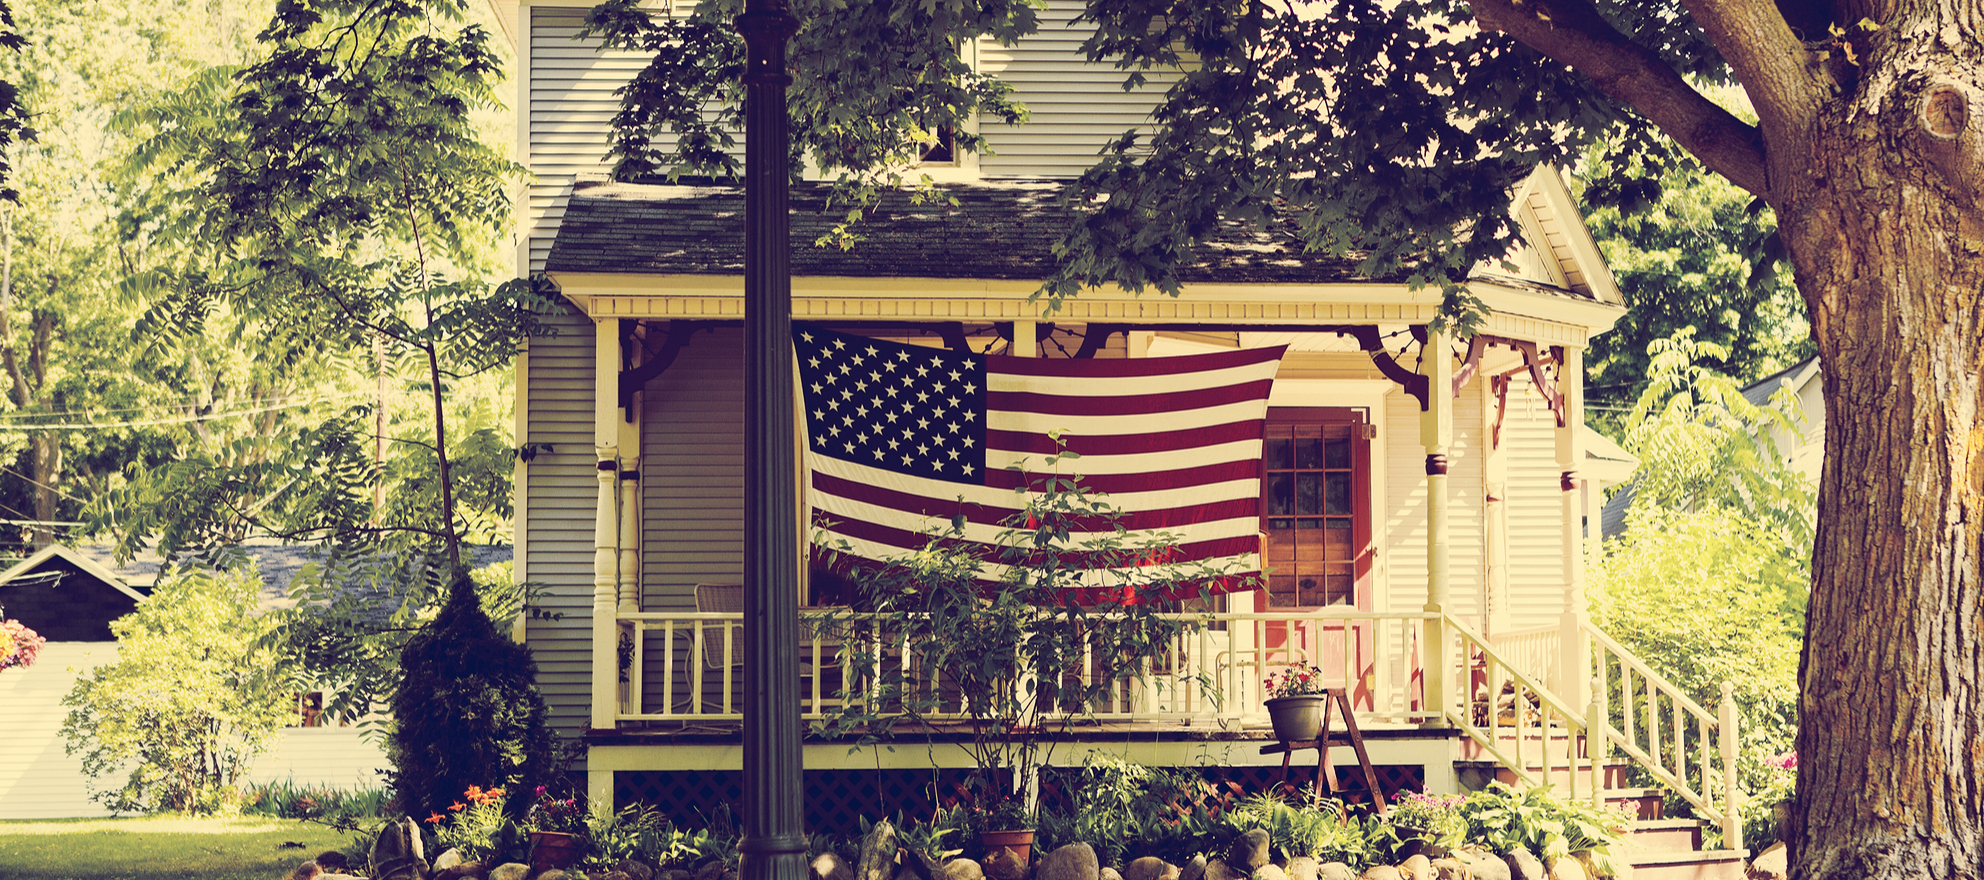 An American flag in front of a home